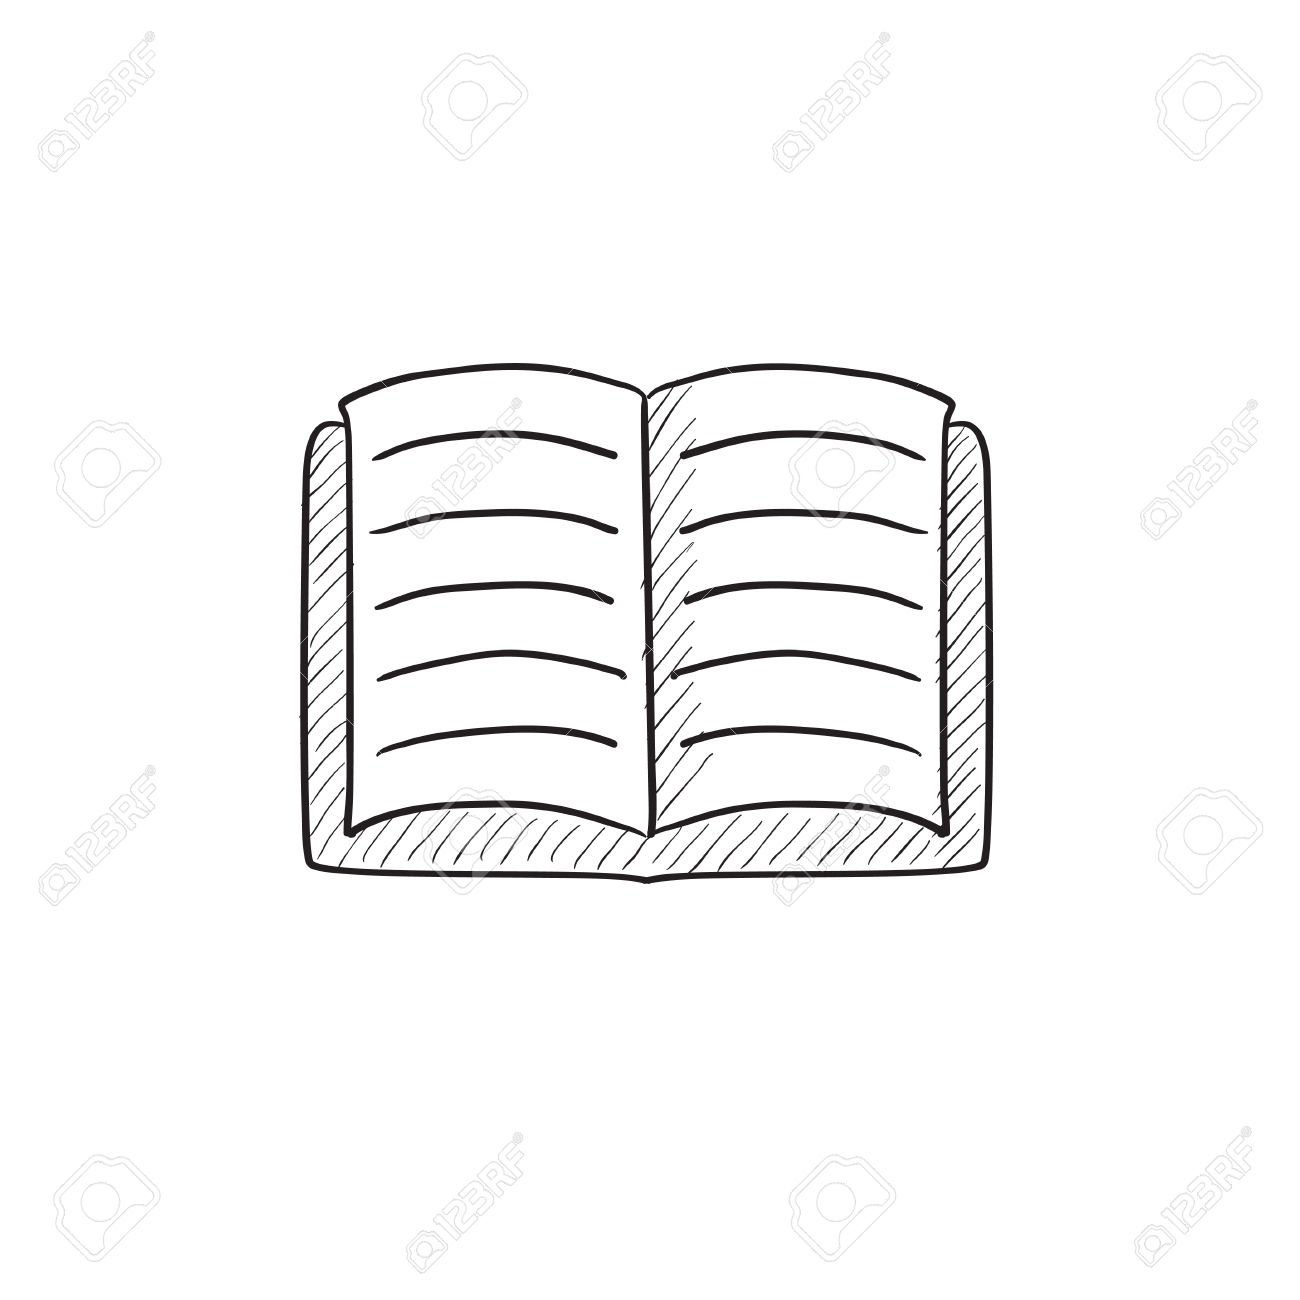 Clipart open book in hands jpg library download Website open book icon clipart free - ClipartFest jpg library download